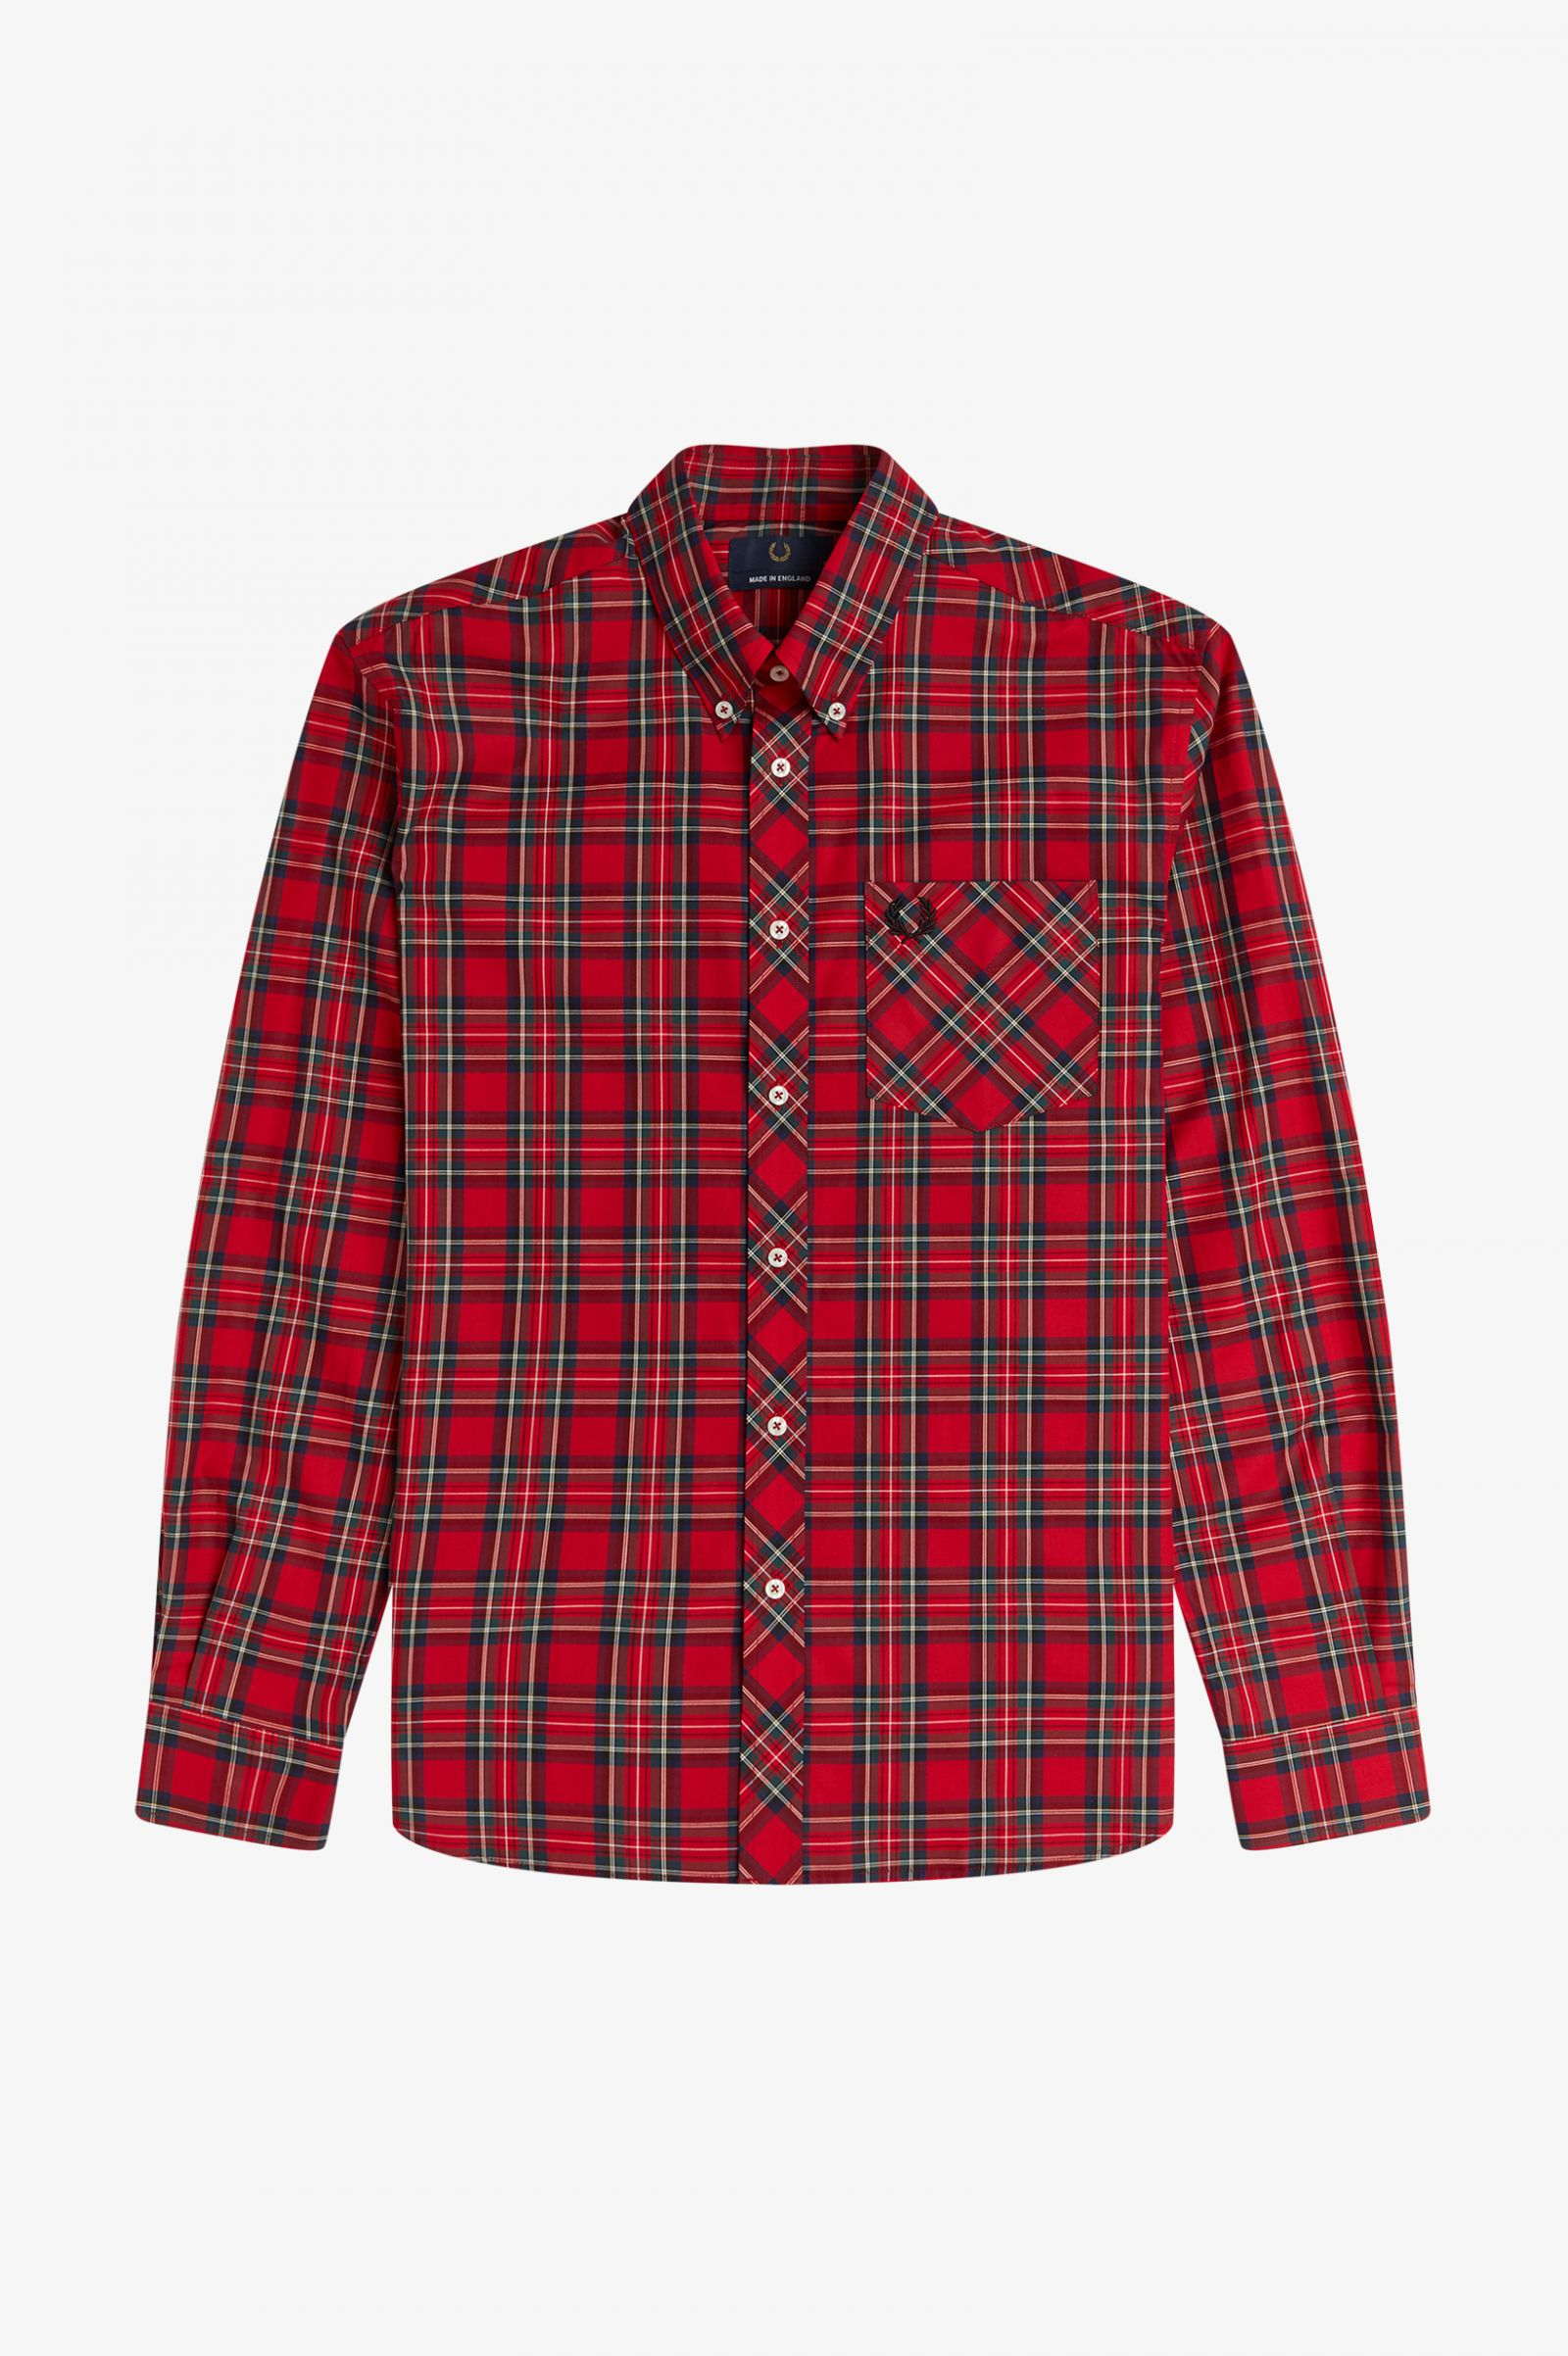 Fred Perry - L/S TARTAN SHIRT - Red